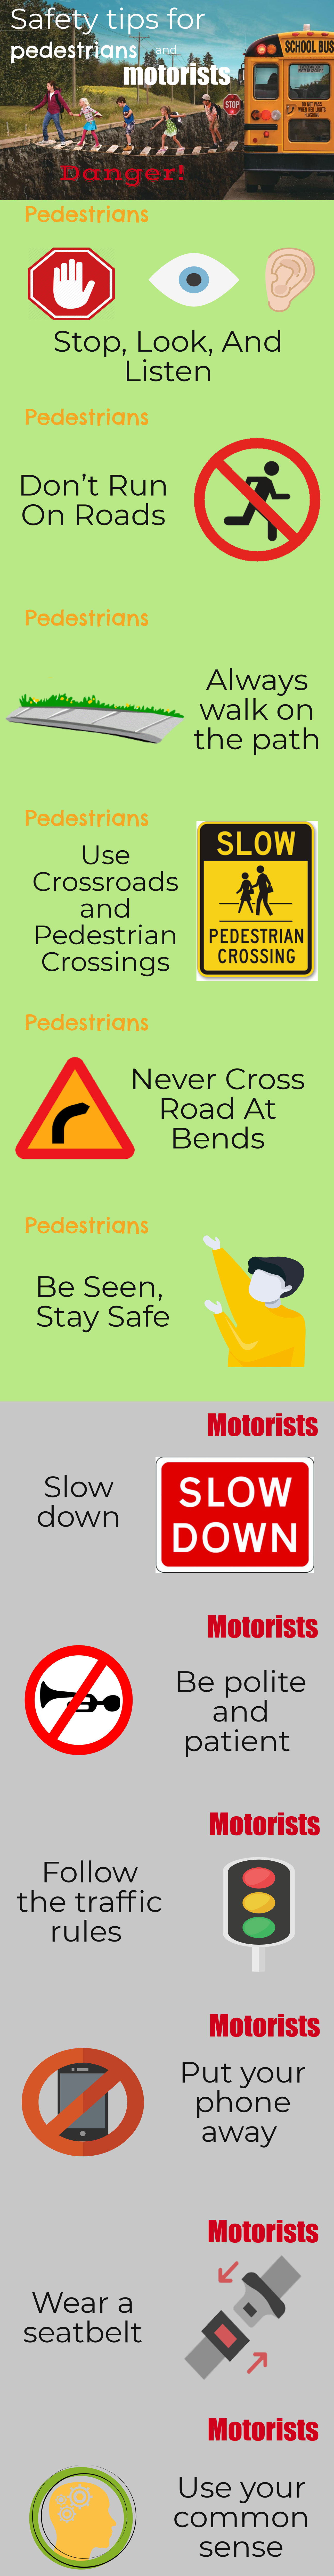 poster on road safety